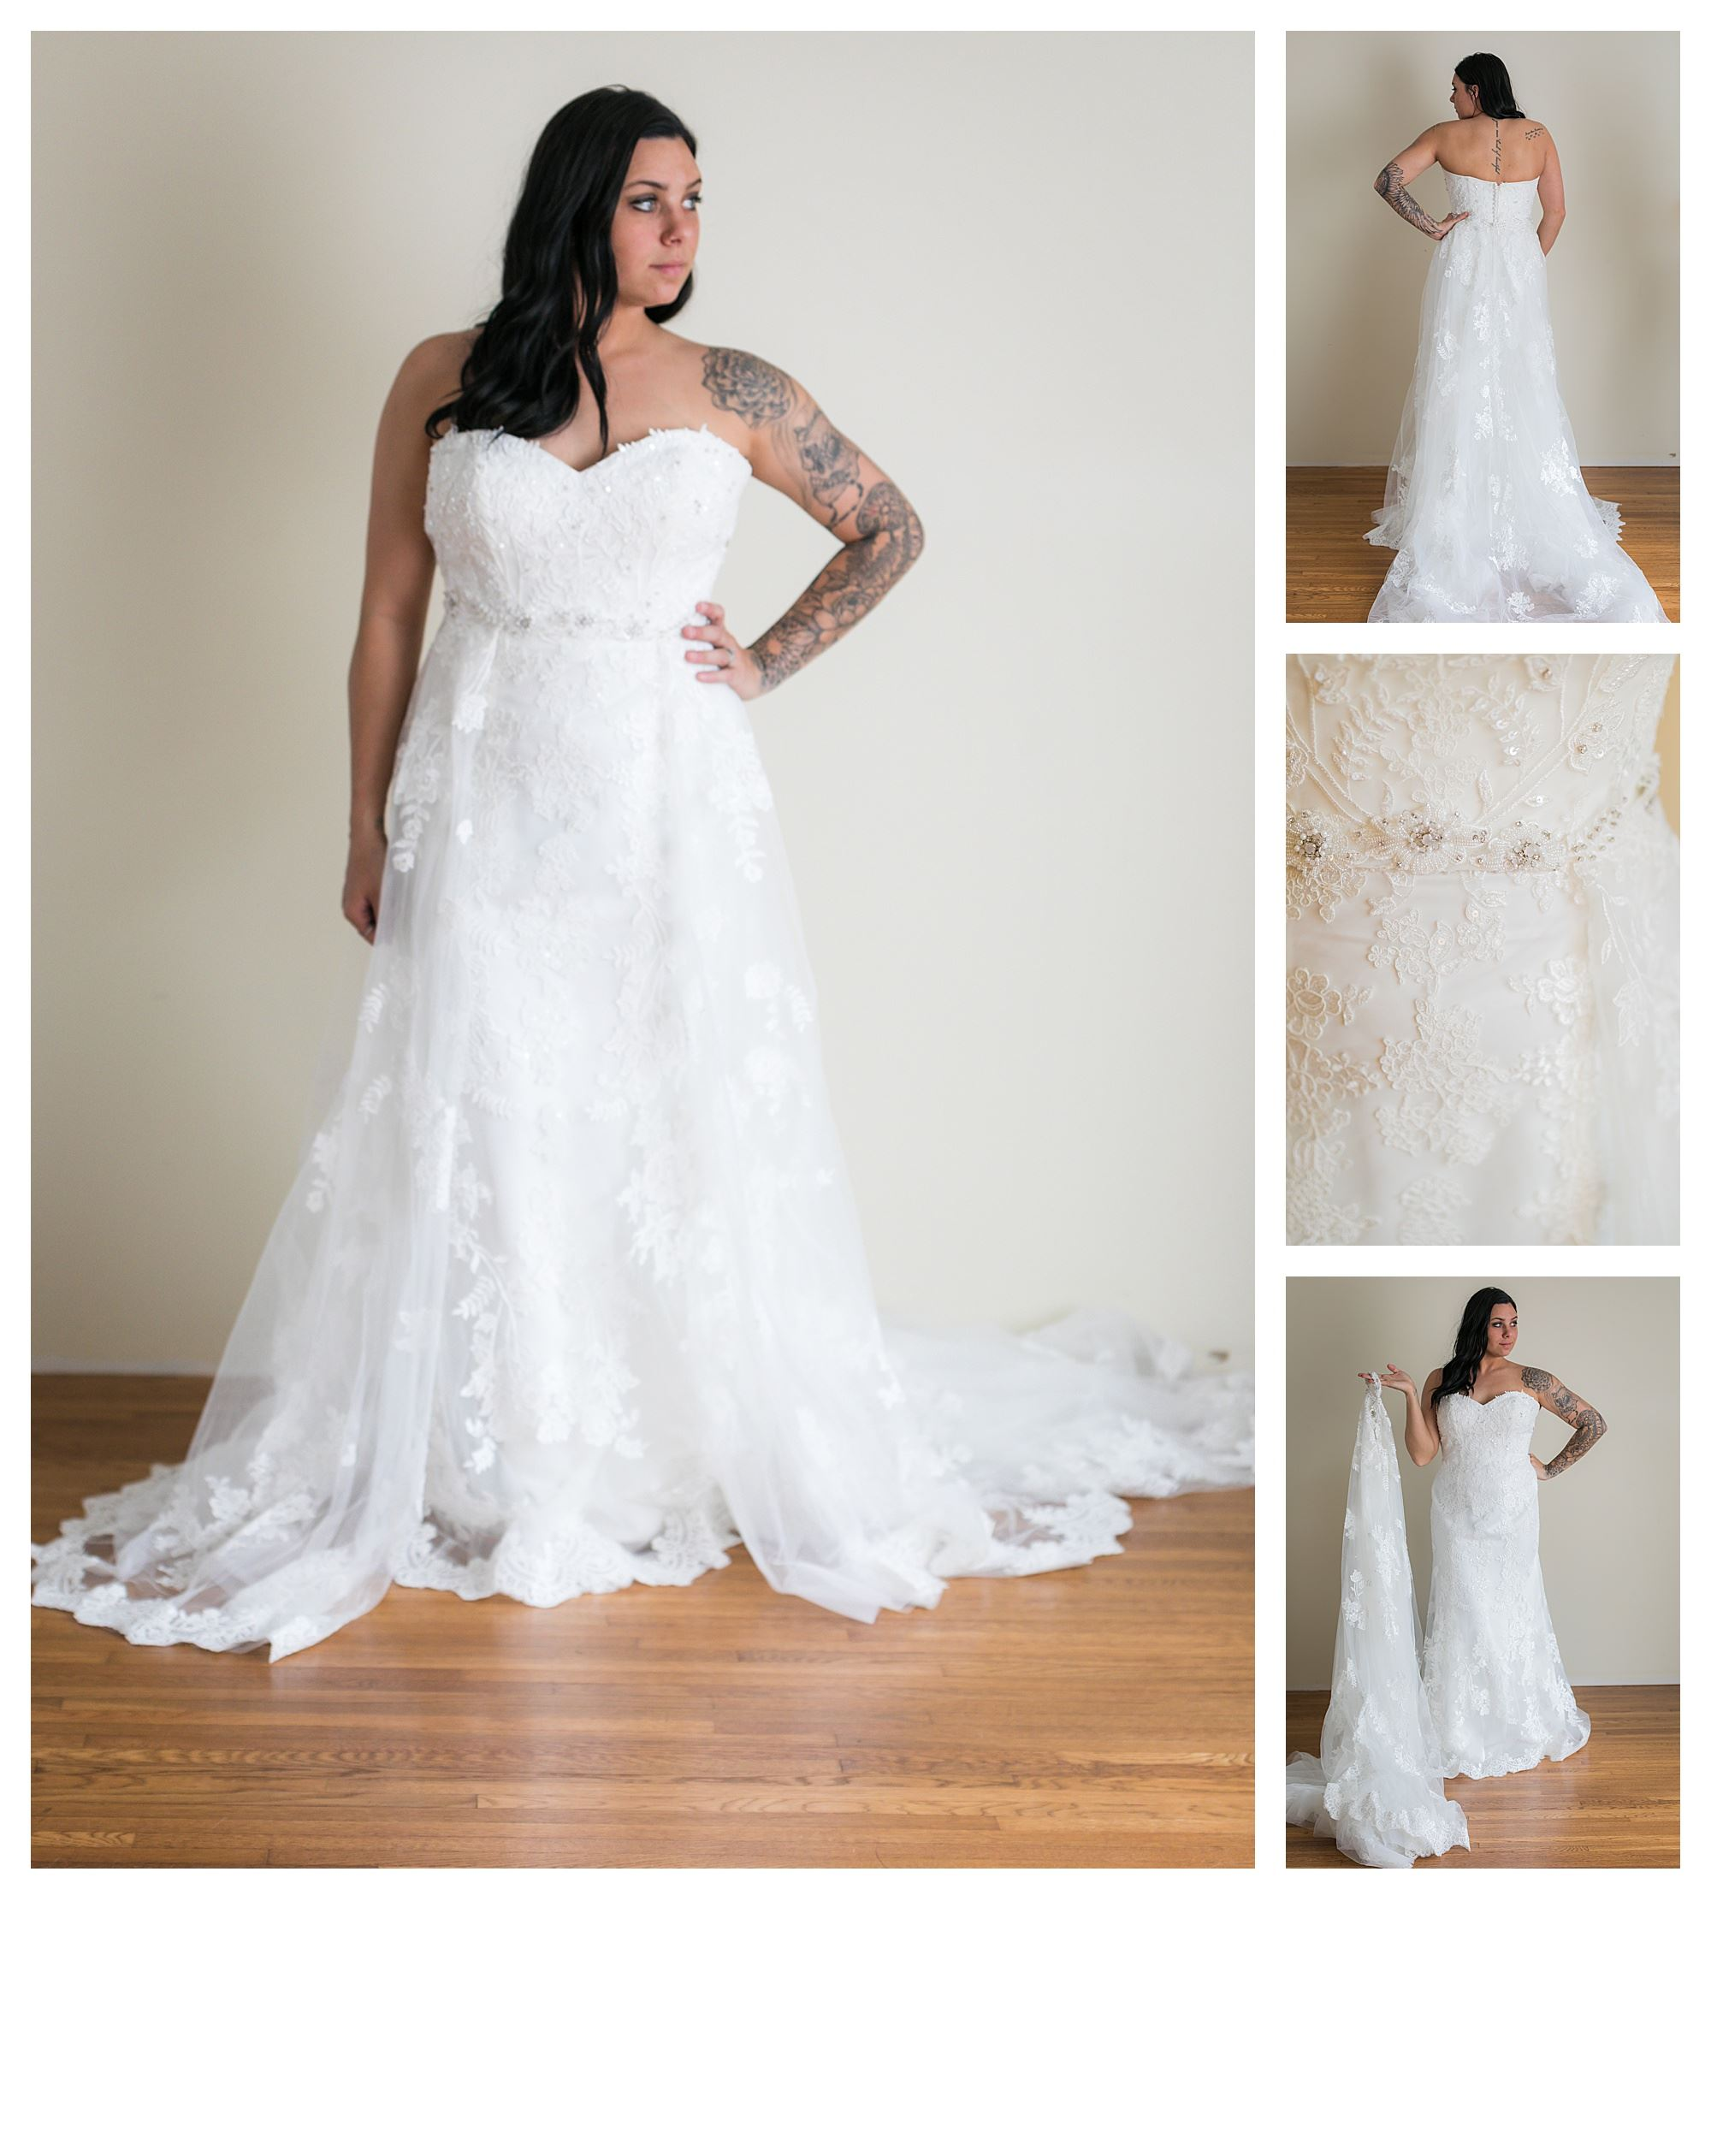 Salem - Size 14 - Ivory - Originally priced $2099 - Sample box price $1399